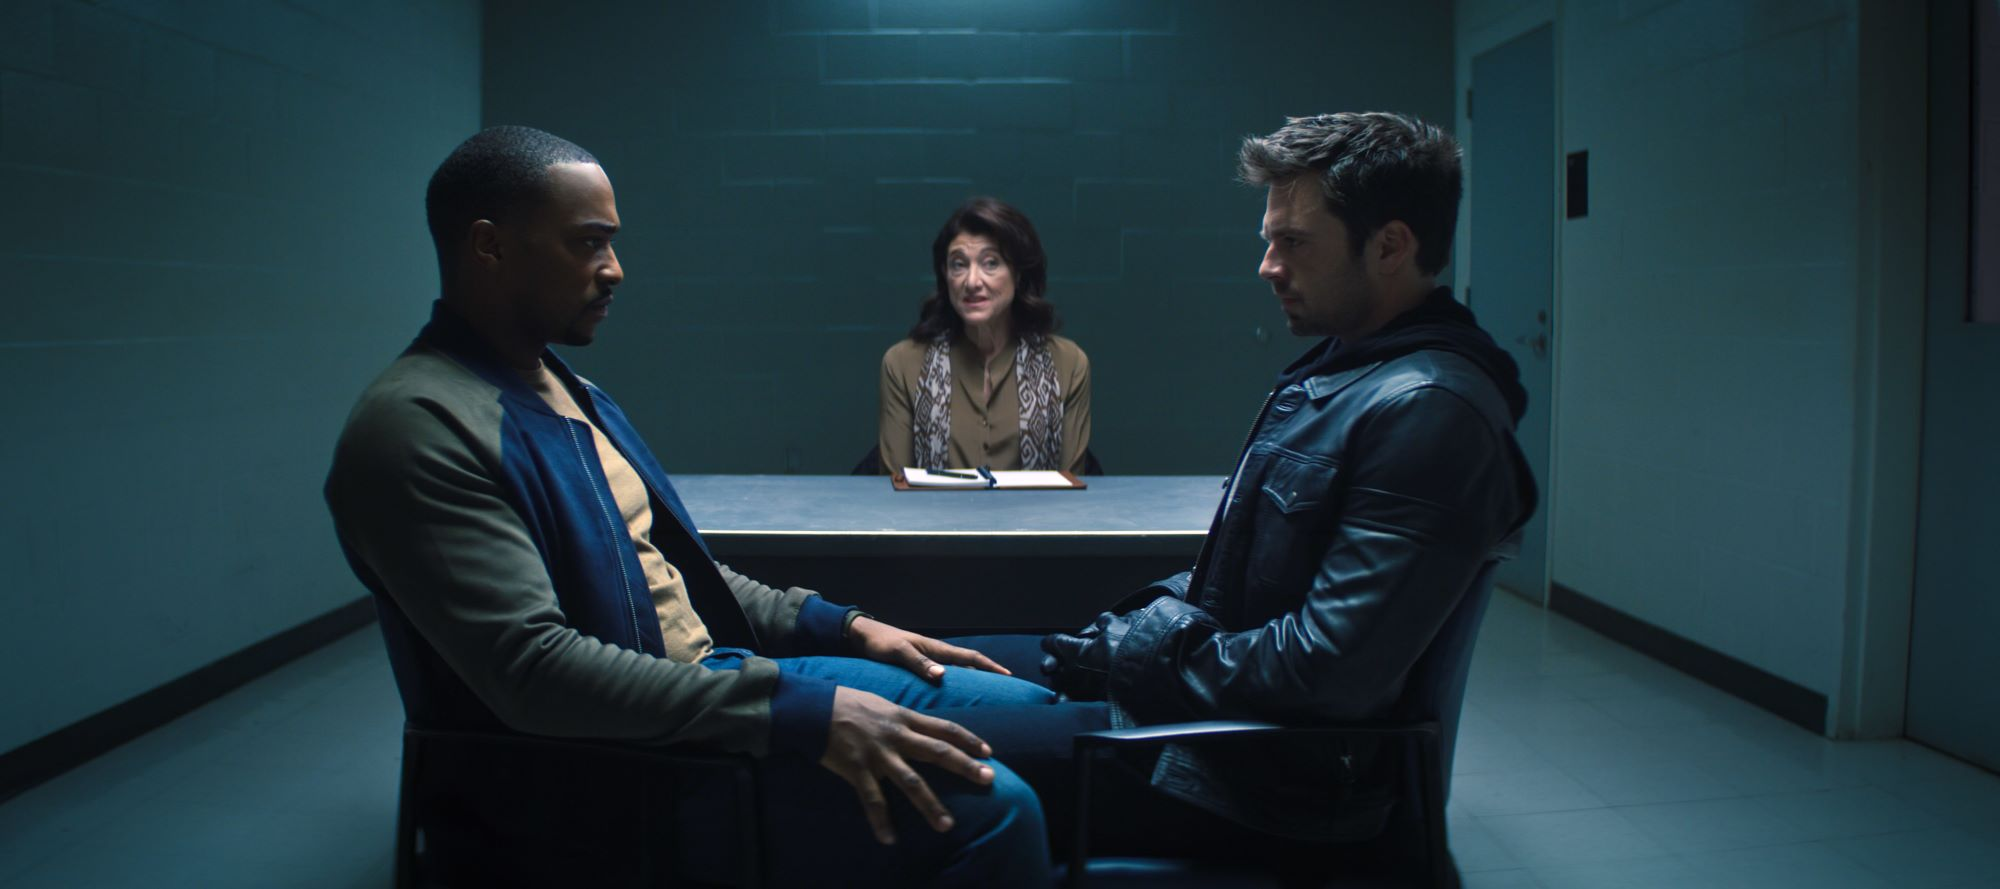 Anthony Mackie, Amy Aquino, and Sebastian Stan in 'The Falcon and the Winter Soldier'